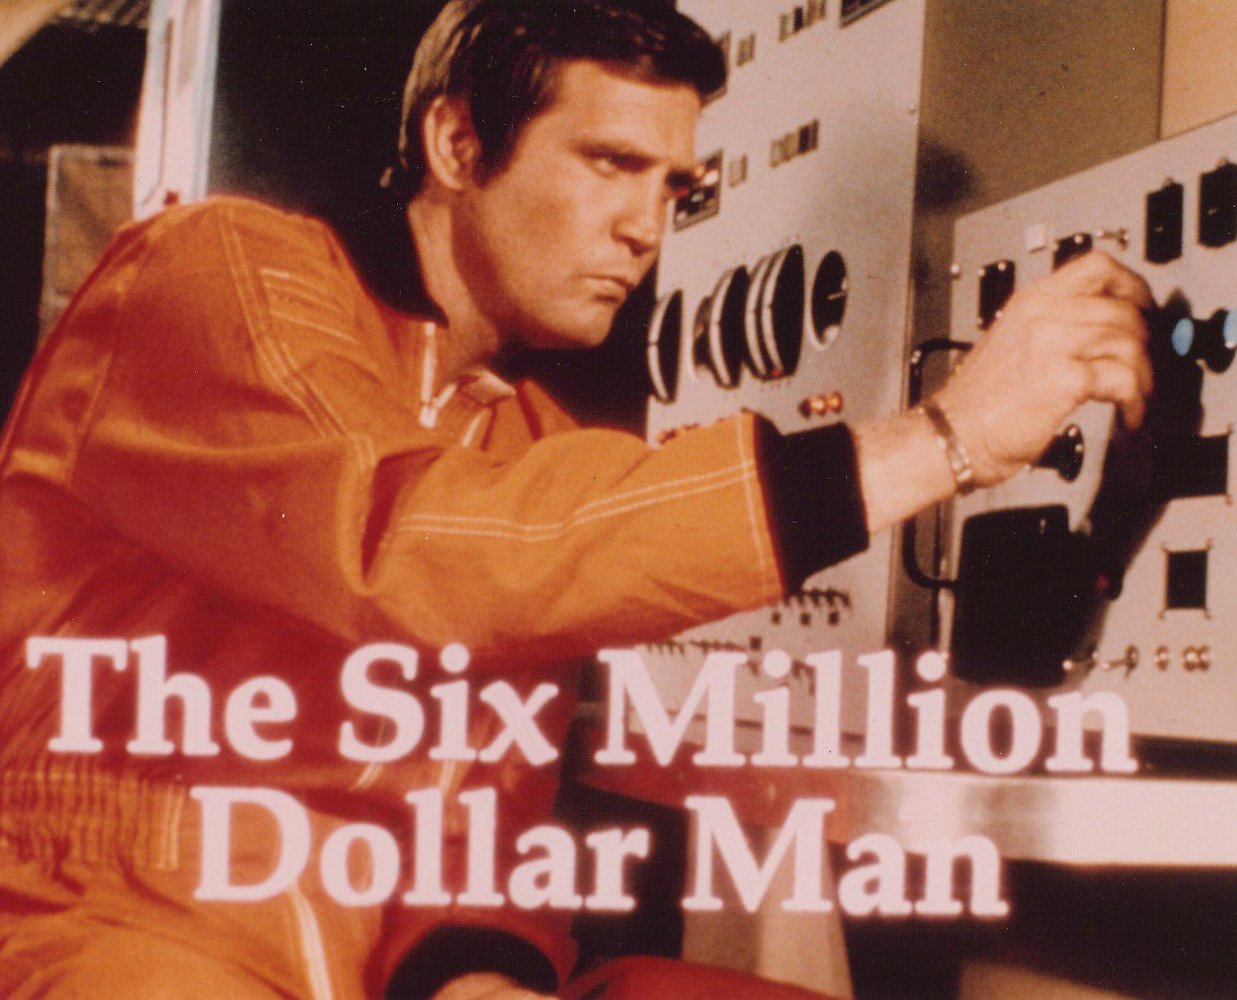 Six million dollar man pictures Cached